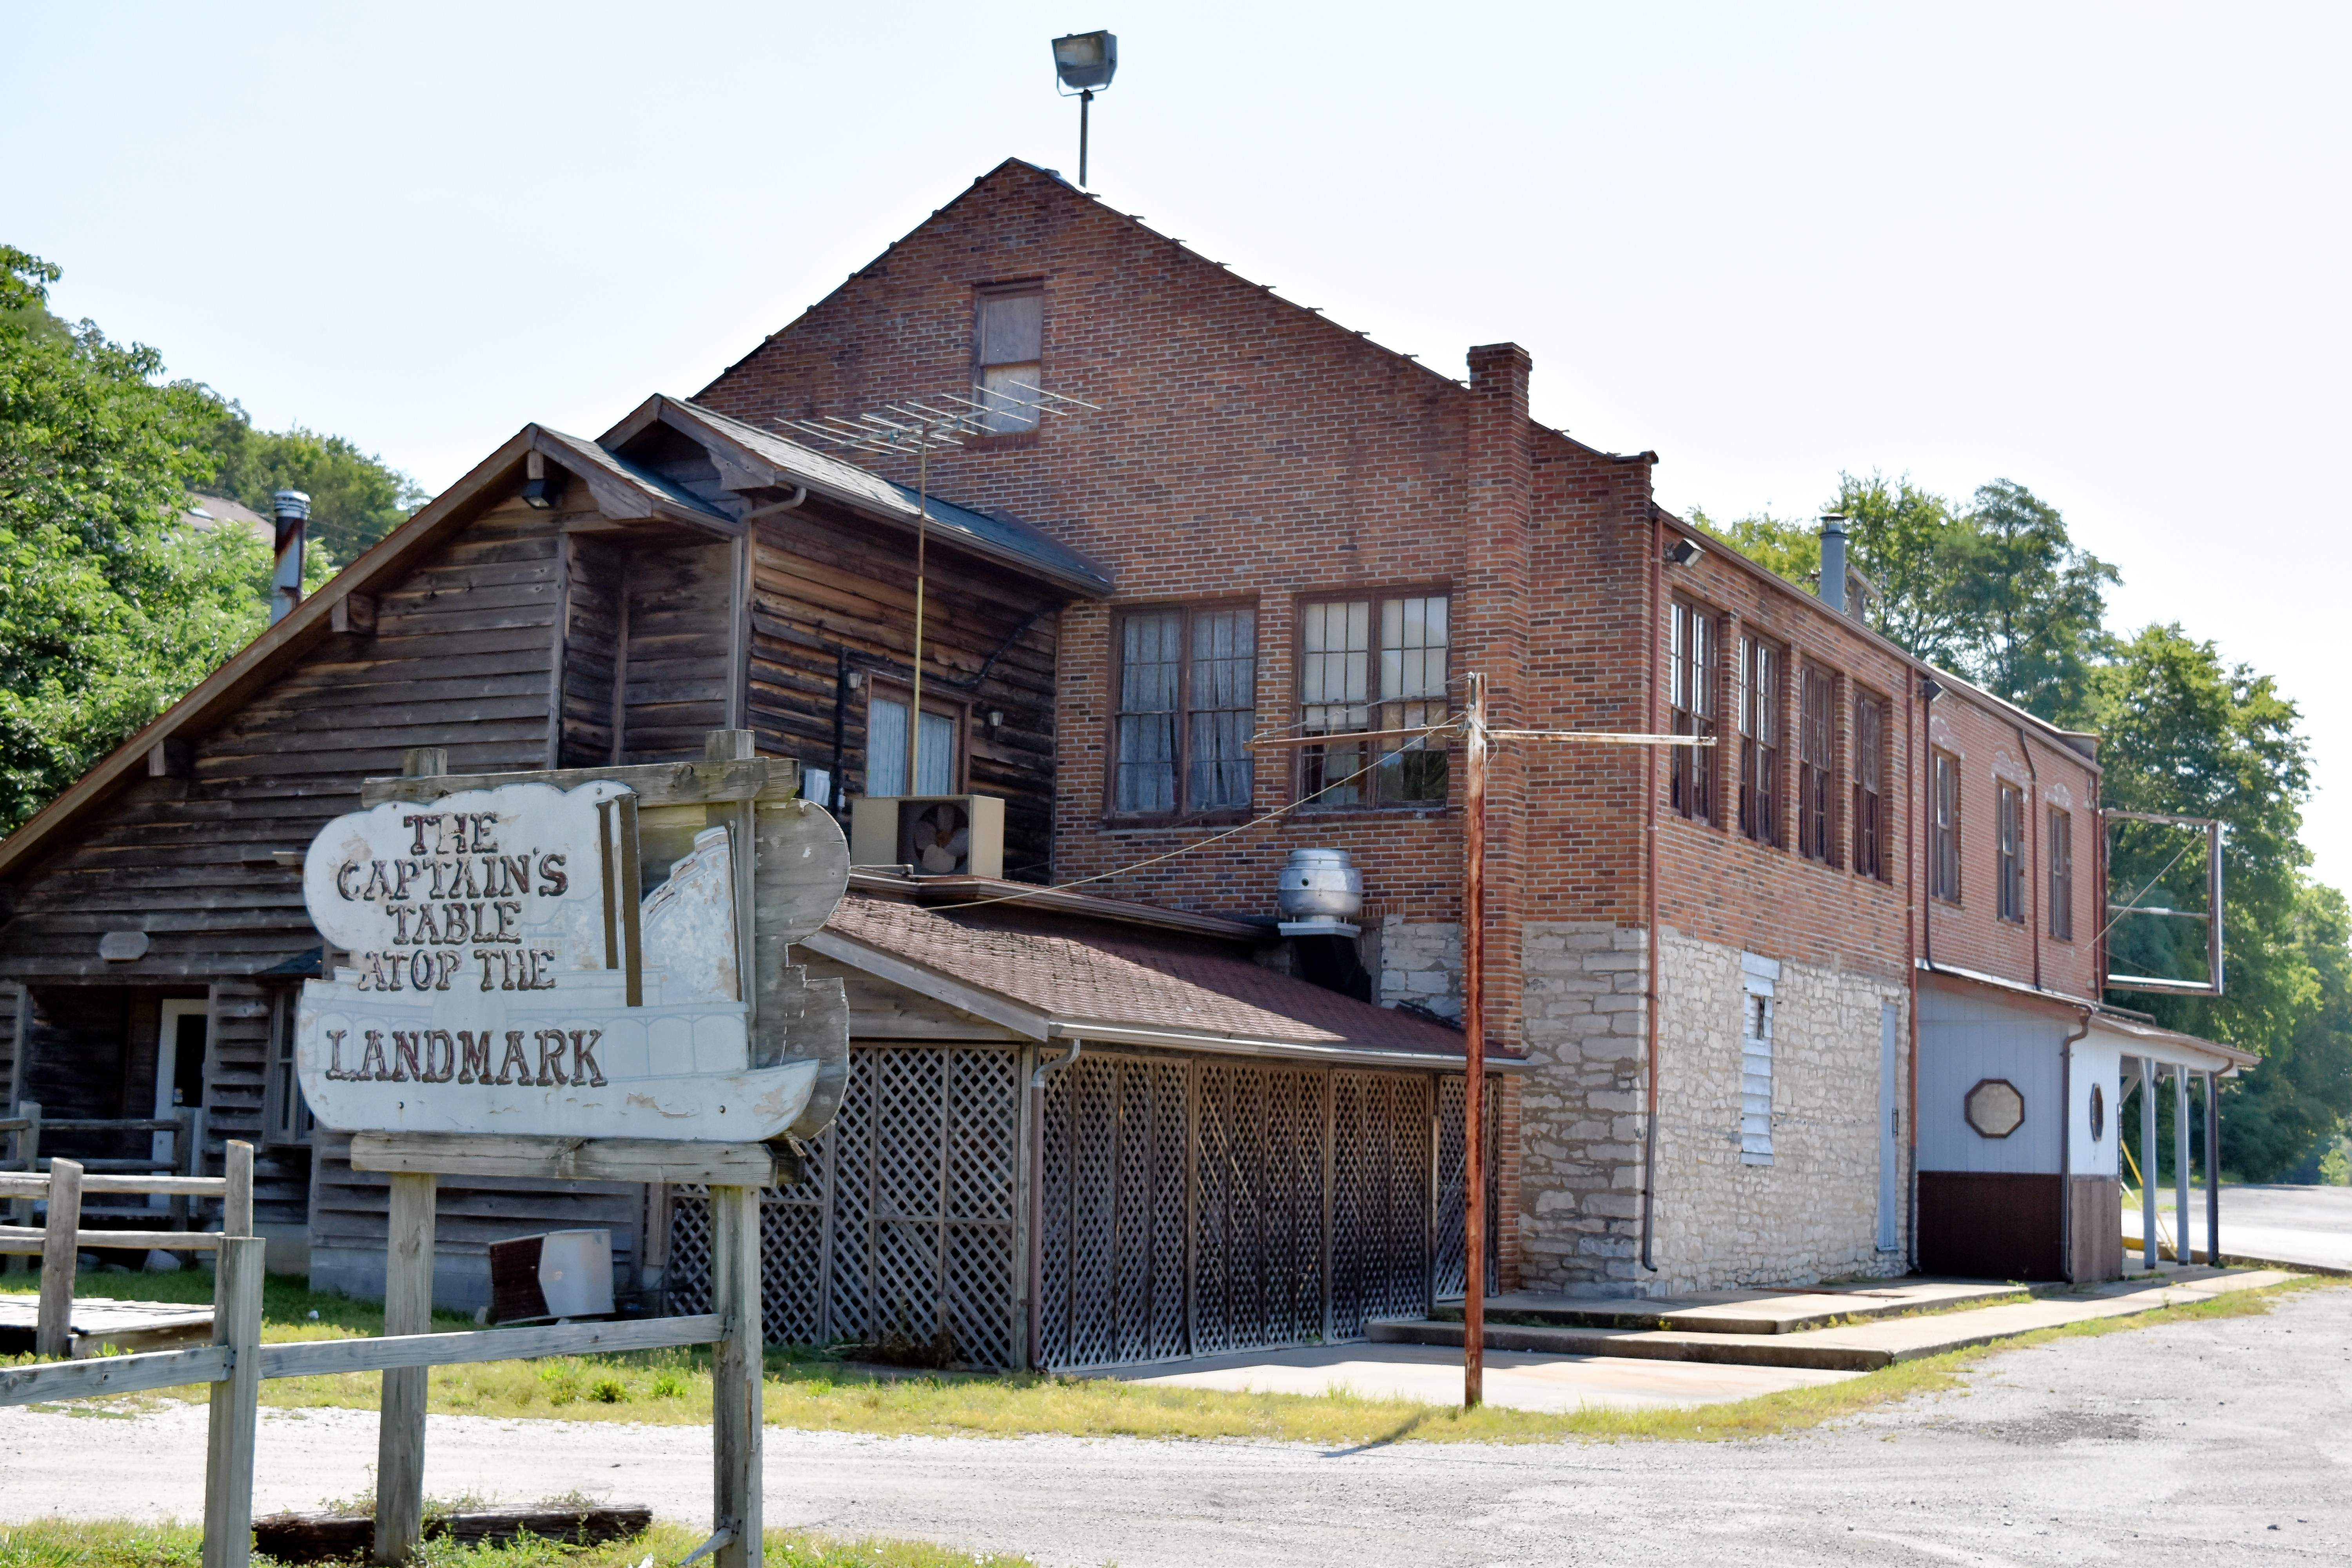 """The Ye Olde Landmark Inn, commonly known as """"the Landmark,"""" is shown at its location on Ferry Street in Chester's riverfront district."""